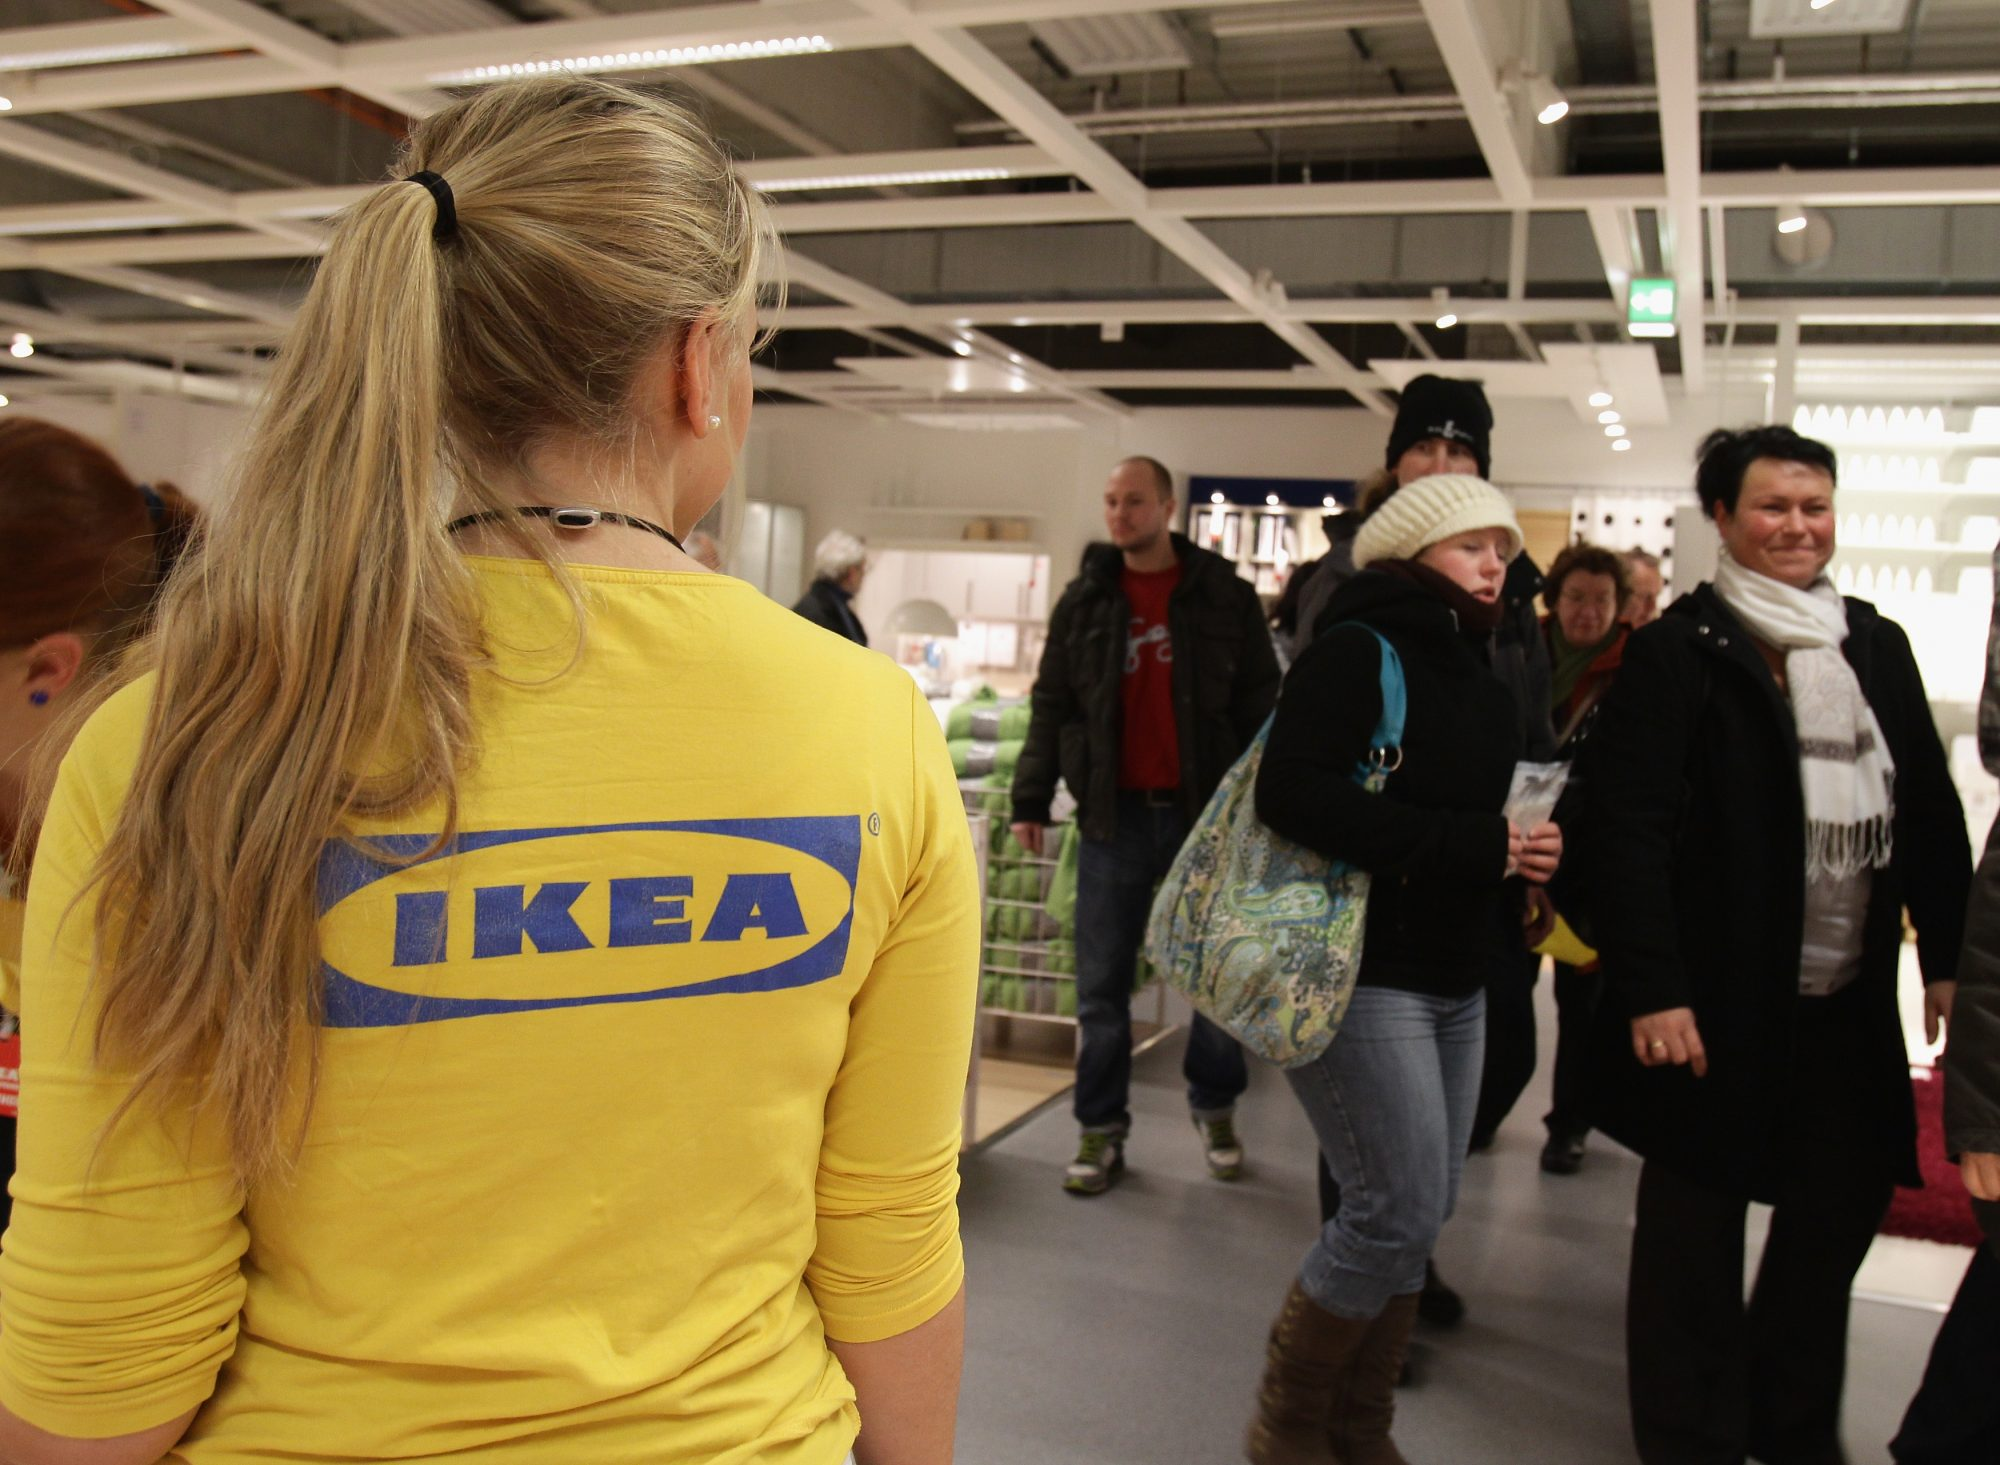 An Ikea employee watches customers shopping during a store opening.